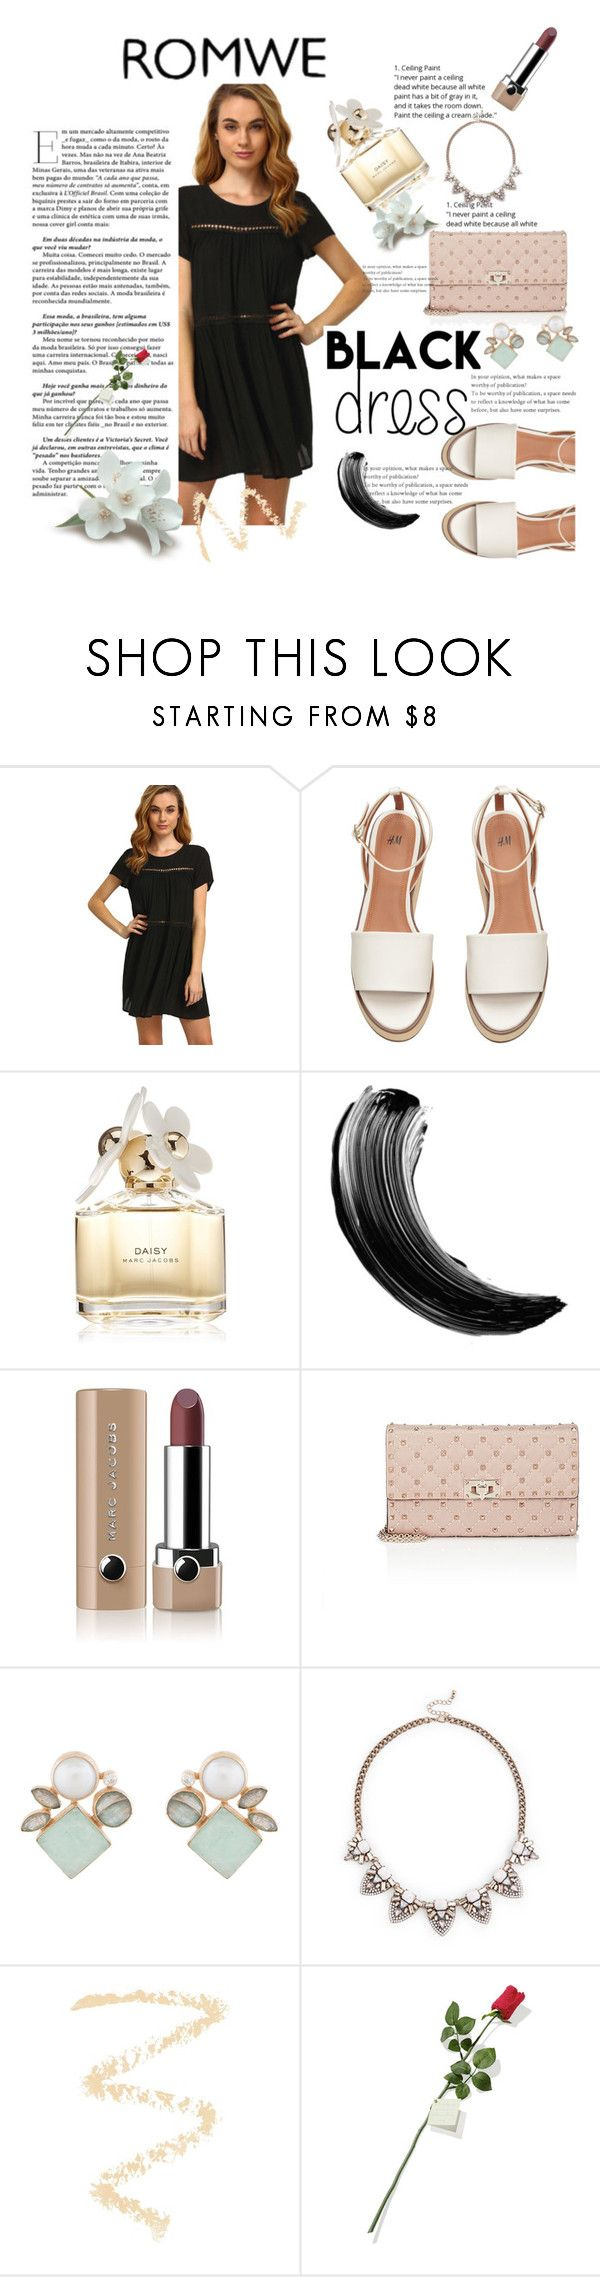 """Uma rosa vermelha"" by thais-santana-1 ❤ liked on Polyvore featuring Marc Jacobs, Valentino, Atelier Mon, Sole Society, Topshop and Hanky Panky"